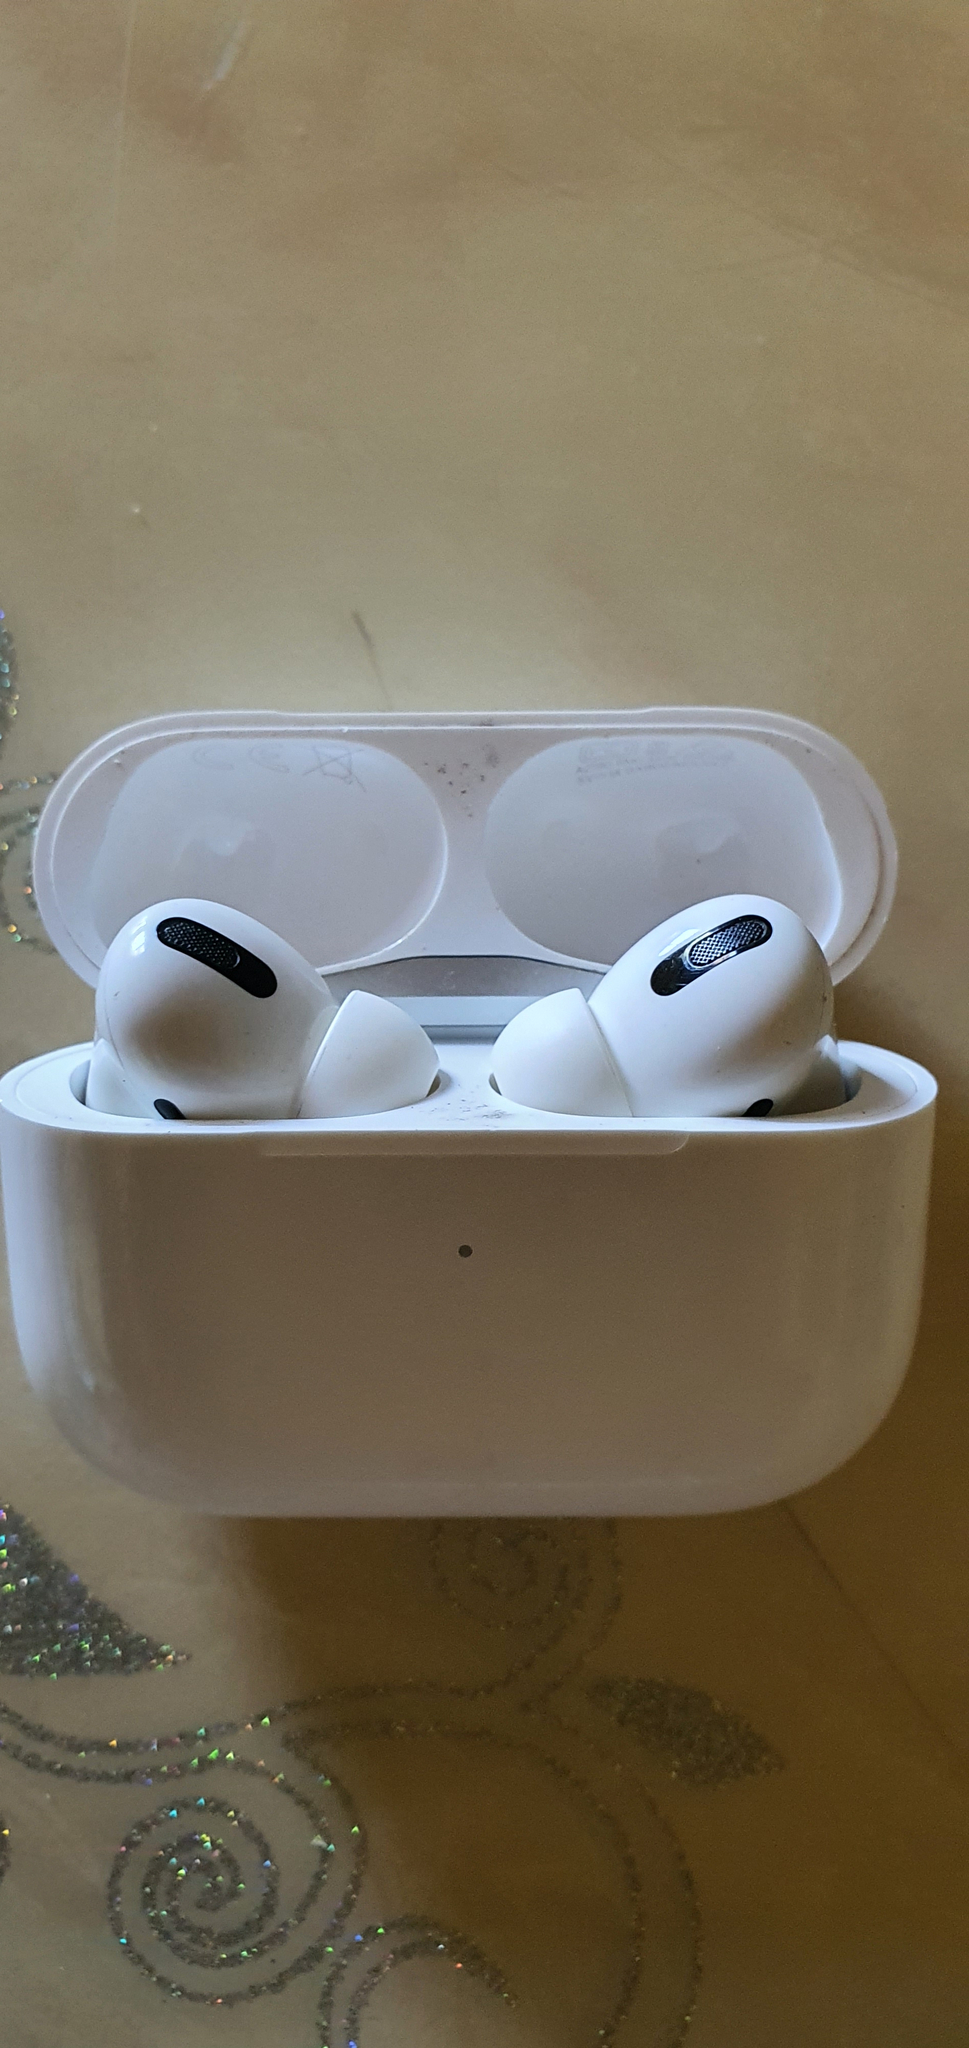 Review Review Tai nghe Airpods Pro